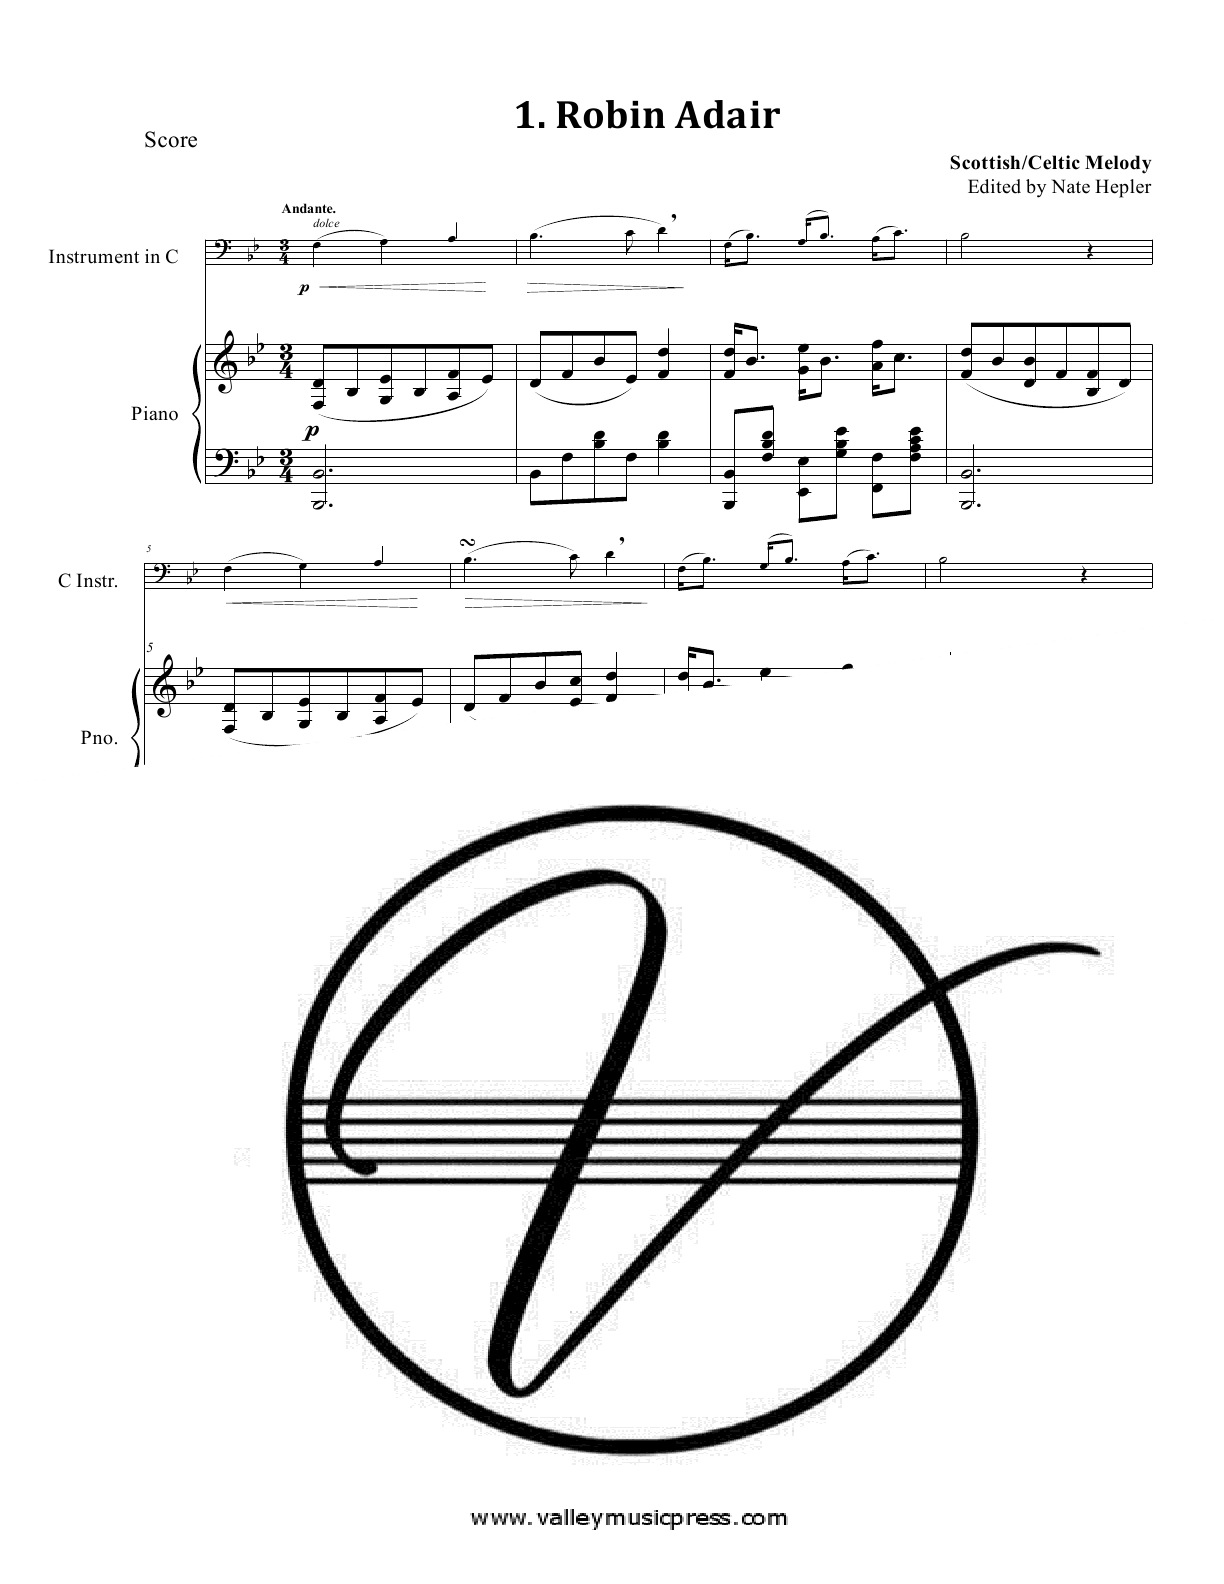 Arban Art of Phrasing Piano Accompaniment Vol. 1 No. 1-25 (Trb)